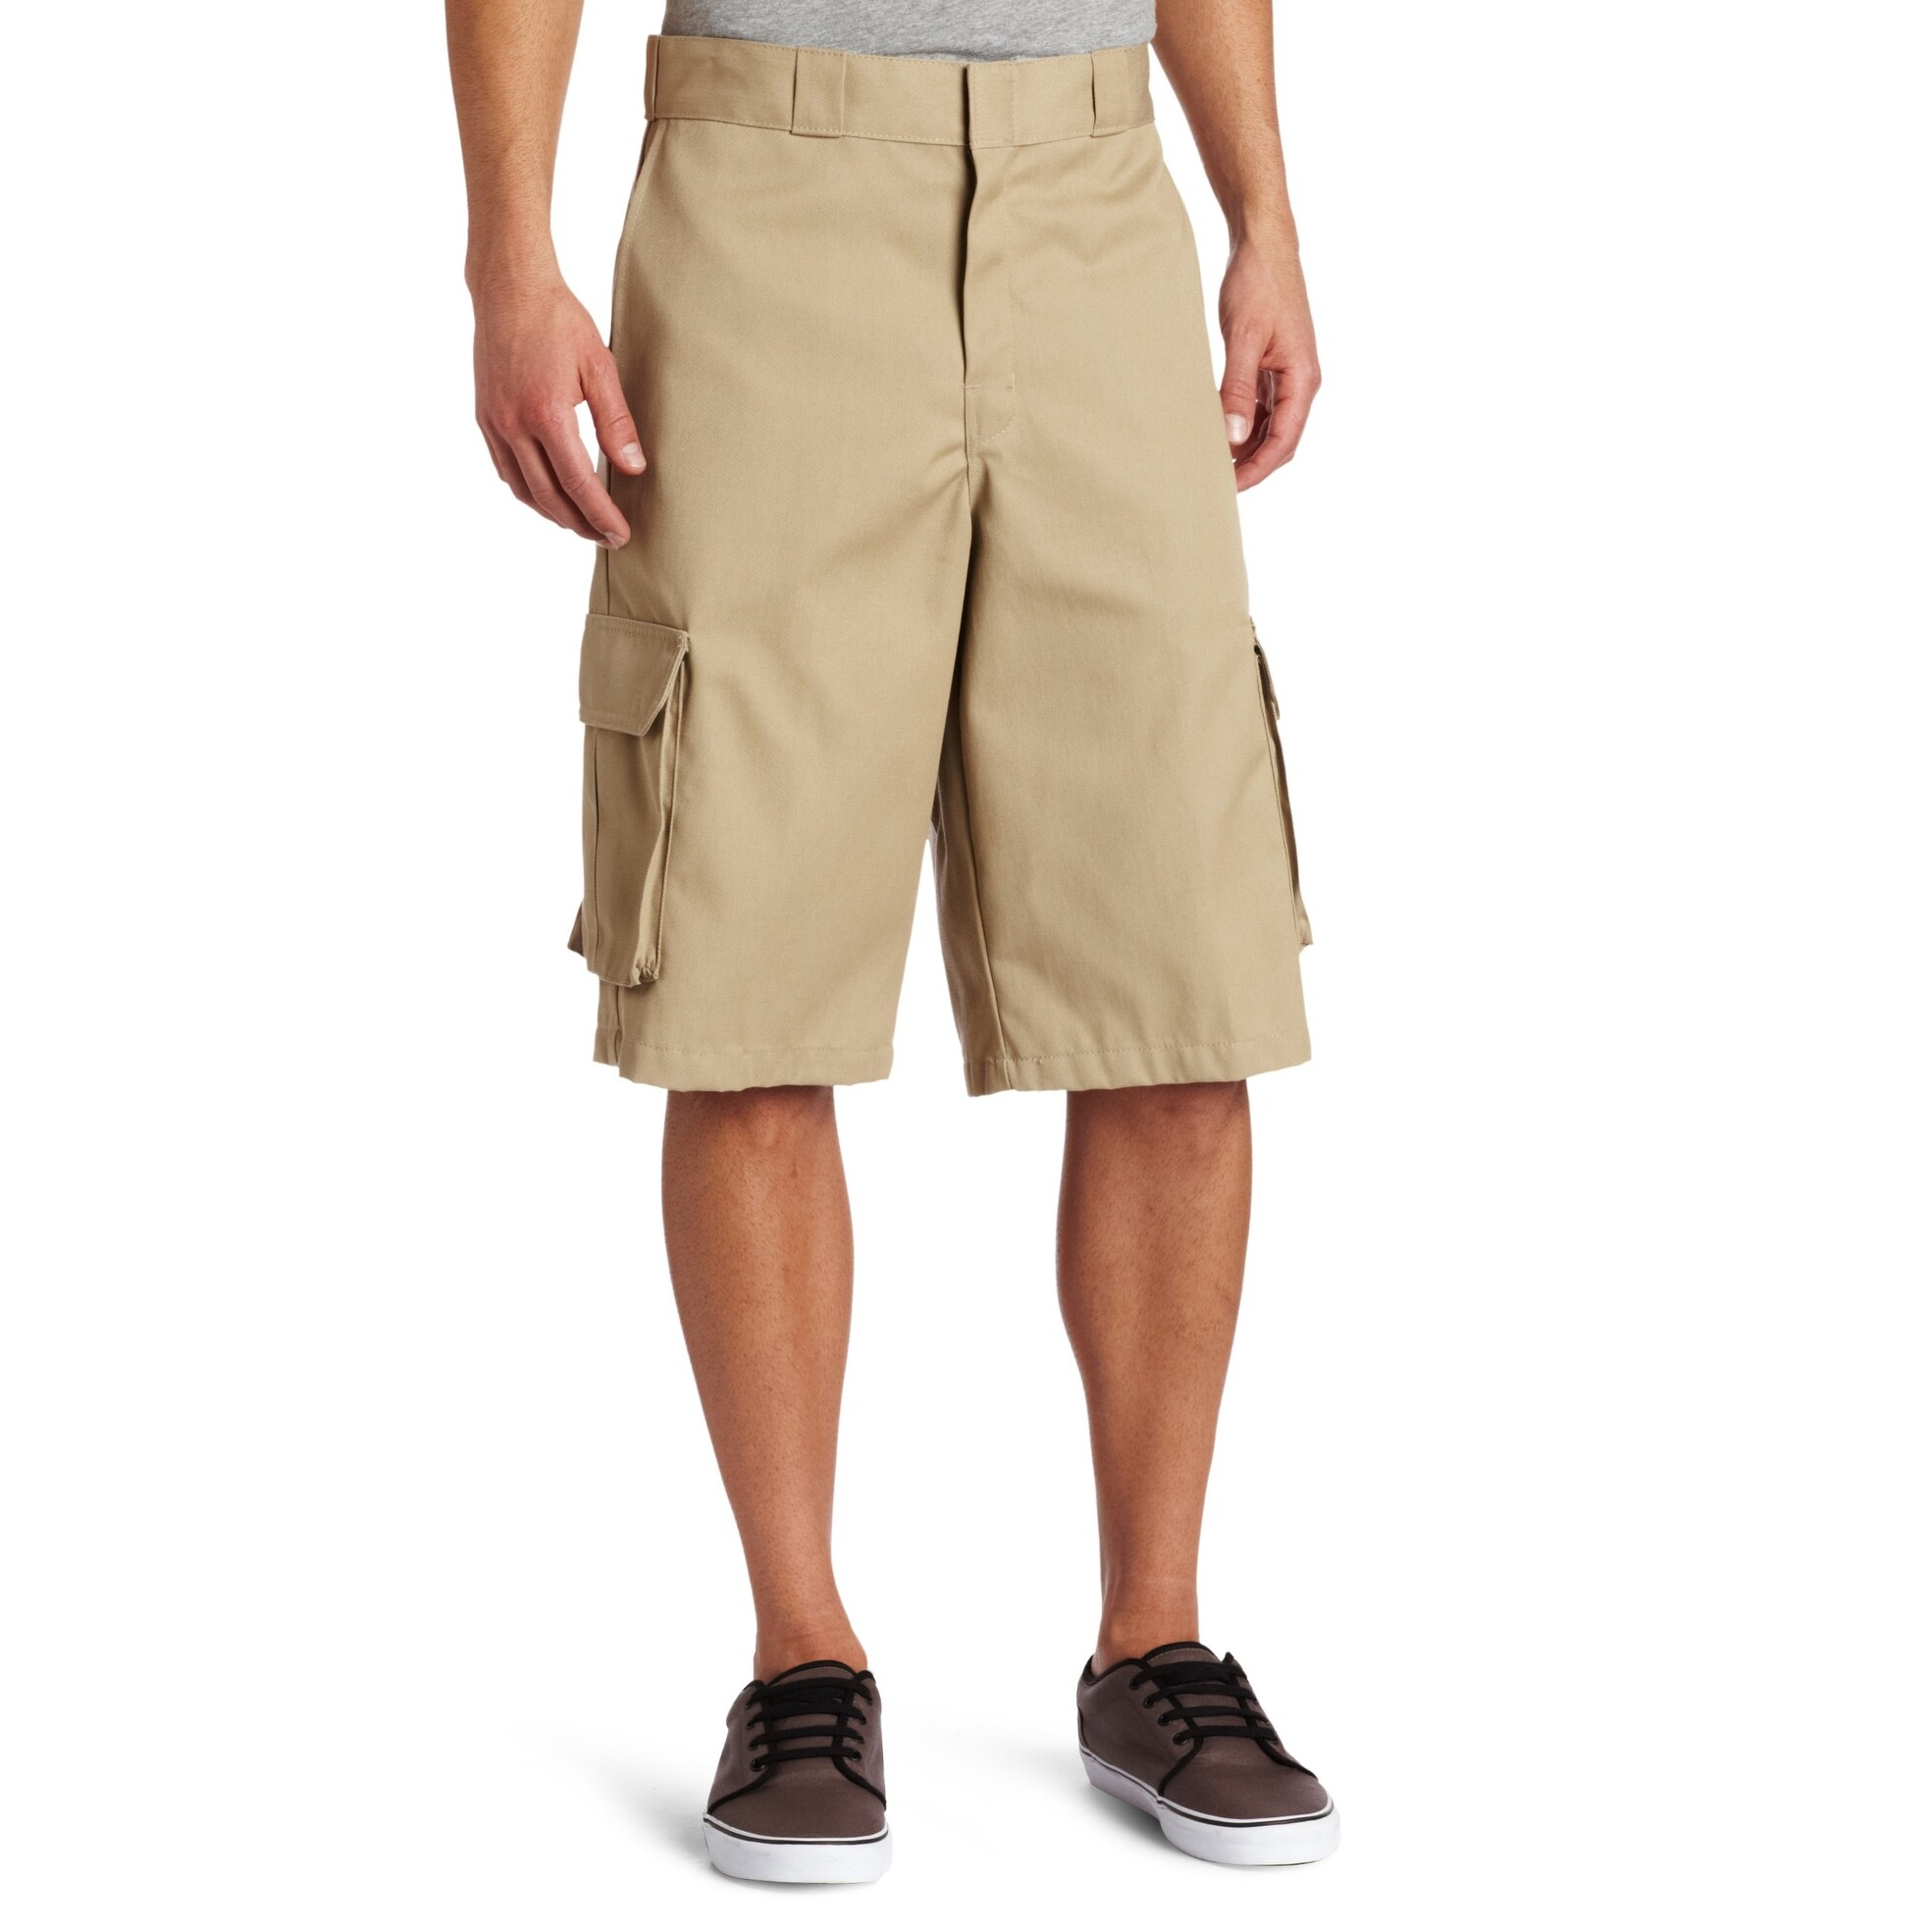 9689da61f1 Shop Dickies Beige Mens Size 32 Loose-Fit Non Wrinkle Cargo Shorts ...